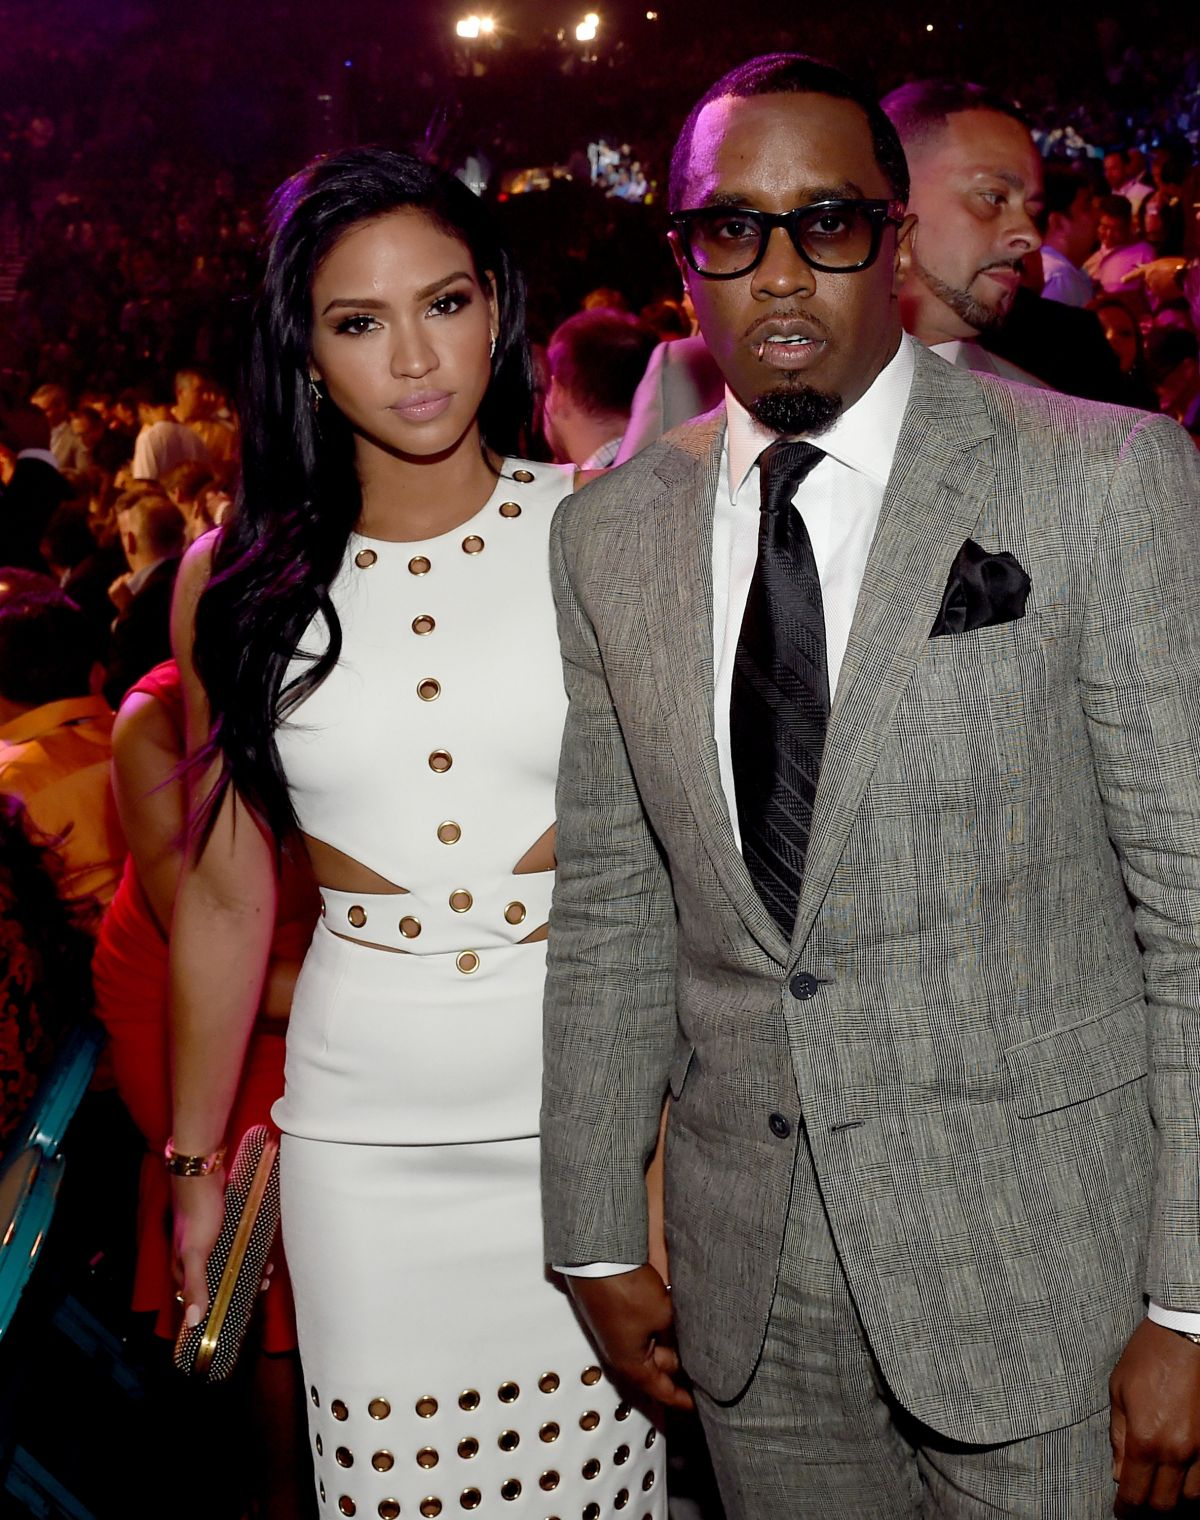 CASSIE VENTURA at Mayweather vs Pacquiao Boxing Match in Las Vegas